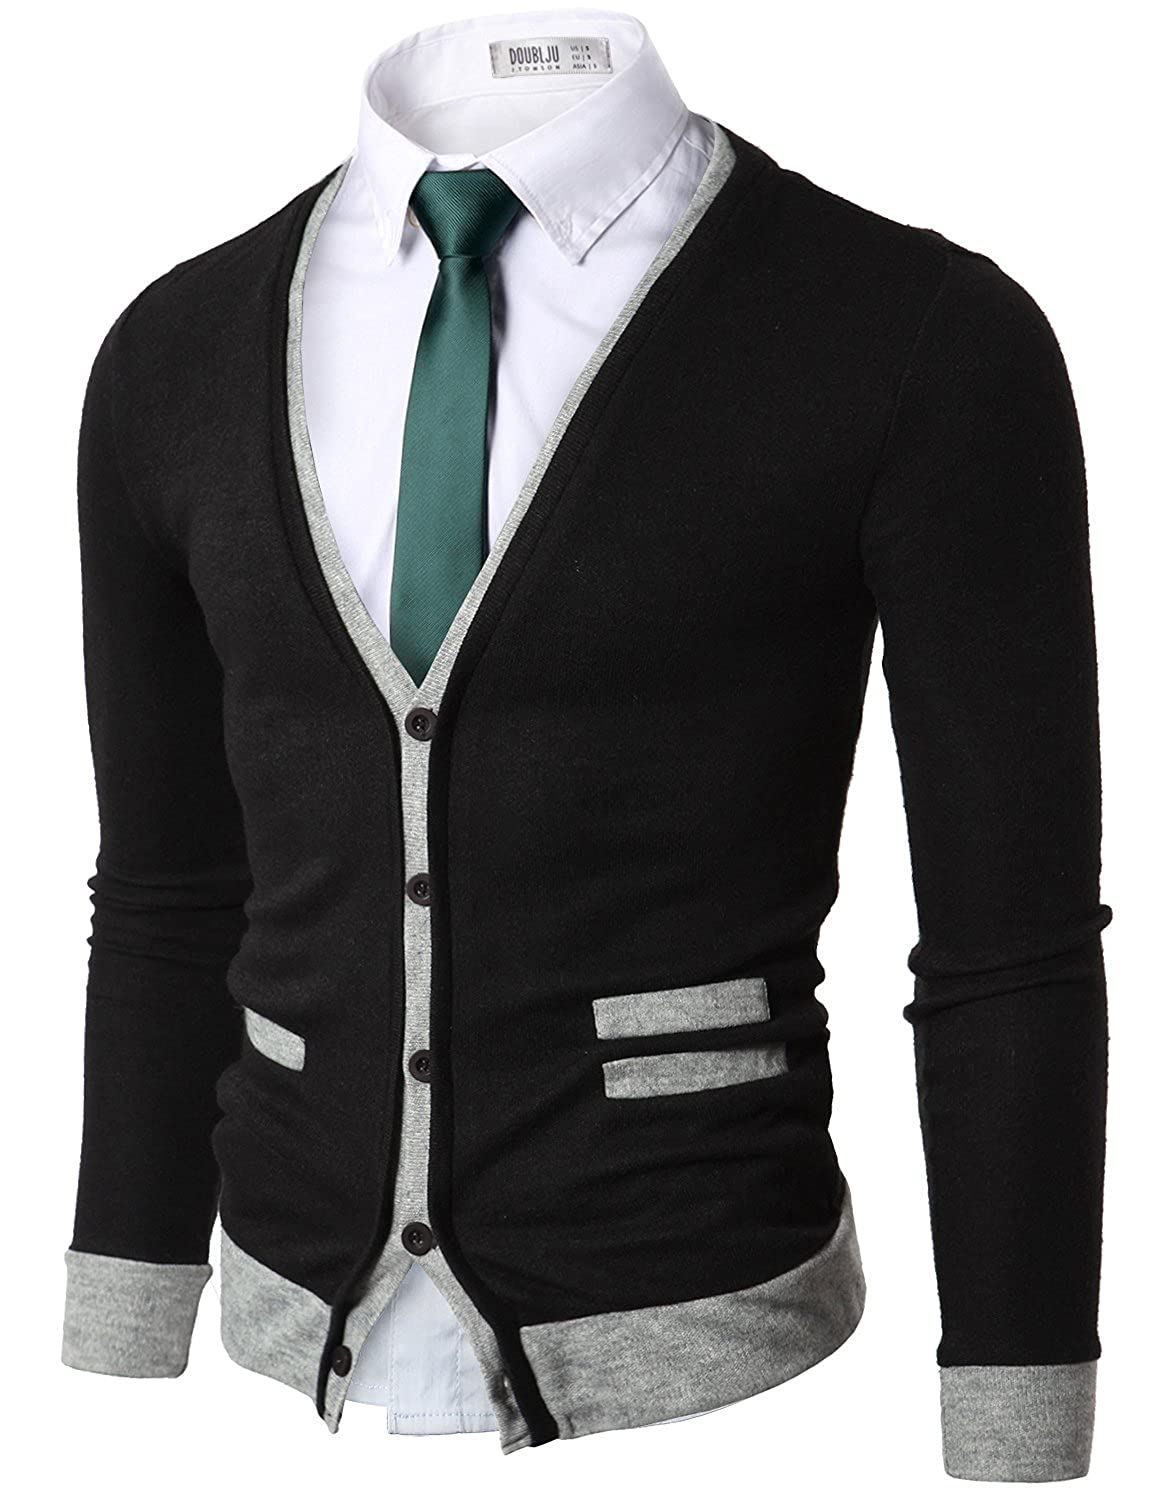 Doublju Mens Sweater Cardigan with Pocket Detail at Amazon Men's ...